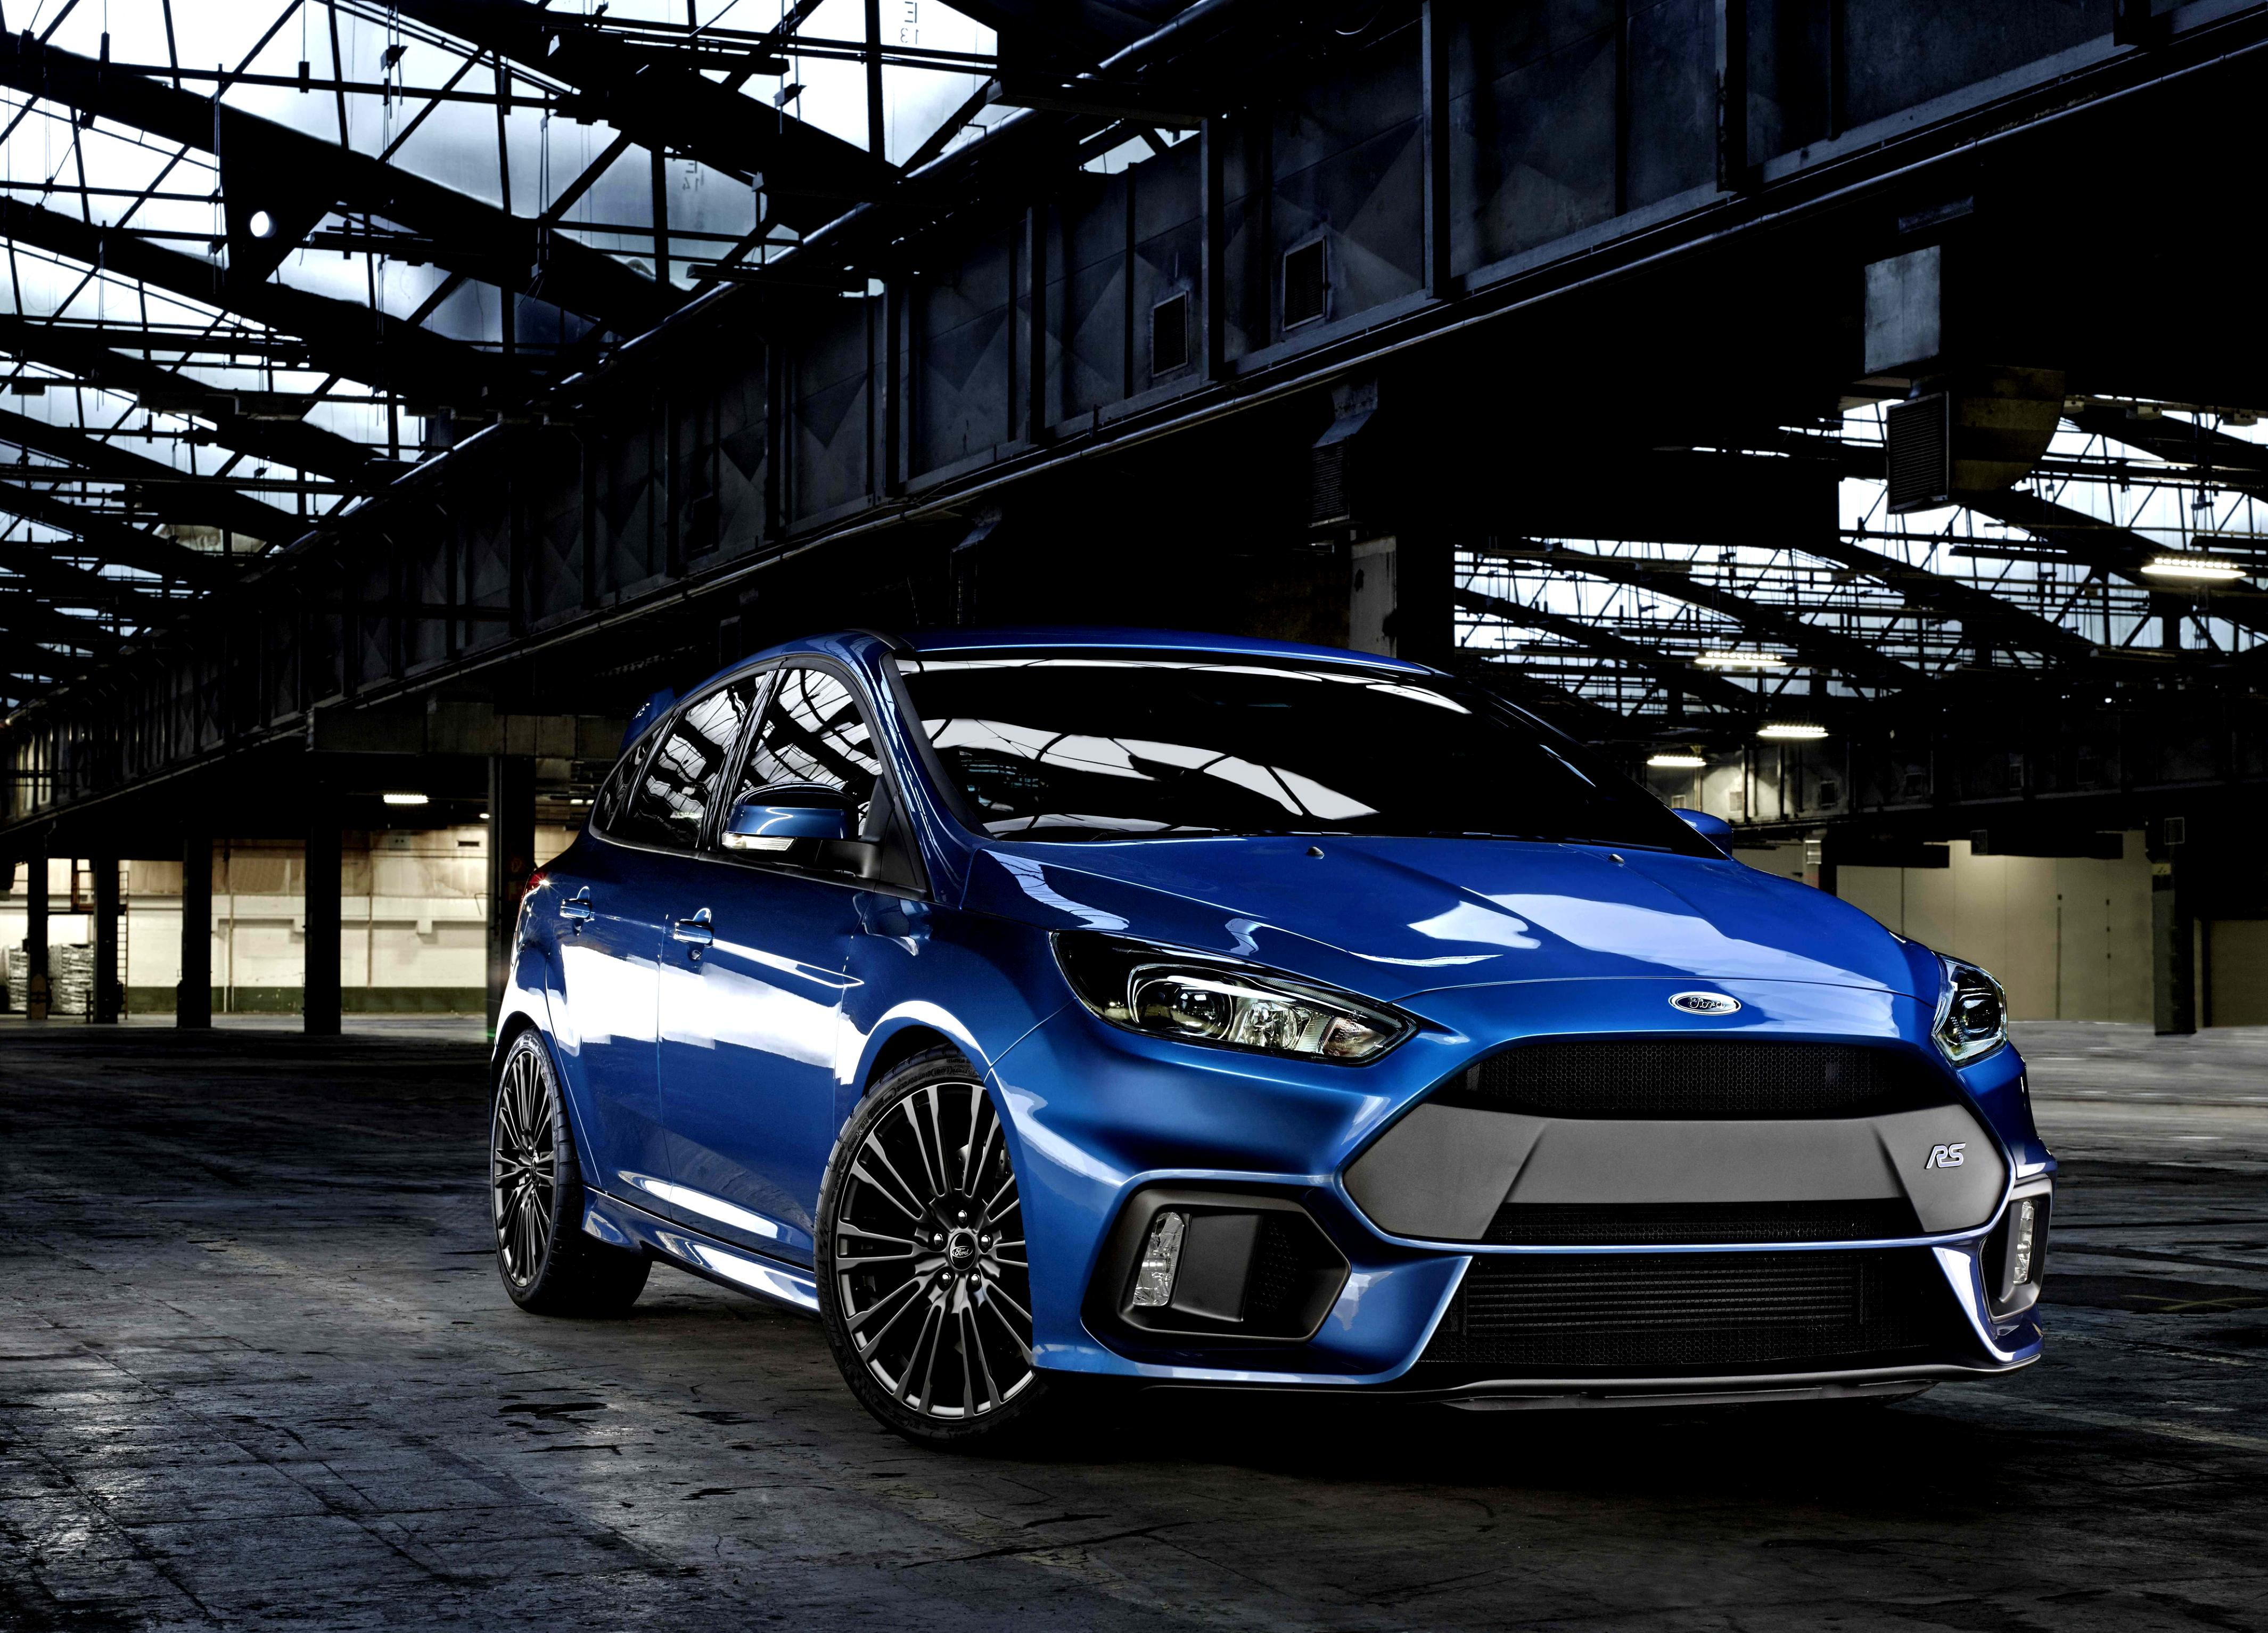 Ford Focus RS 2016 #77